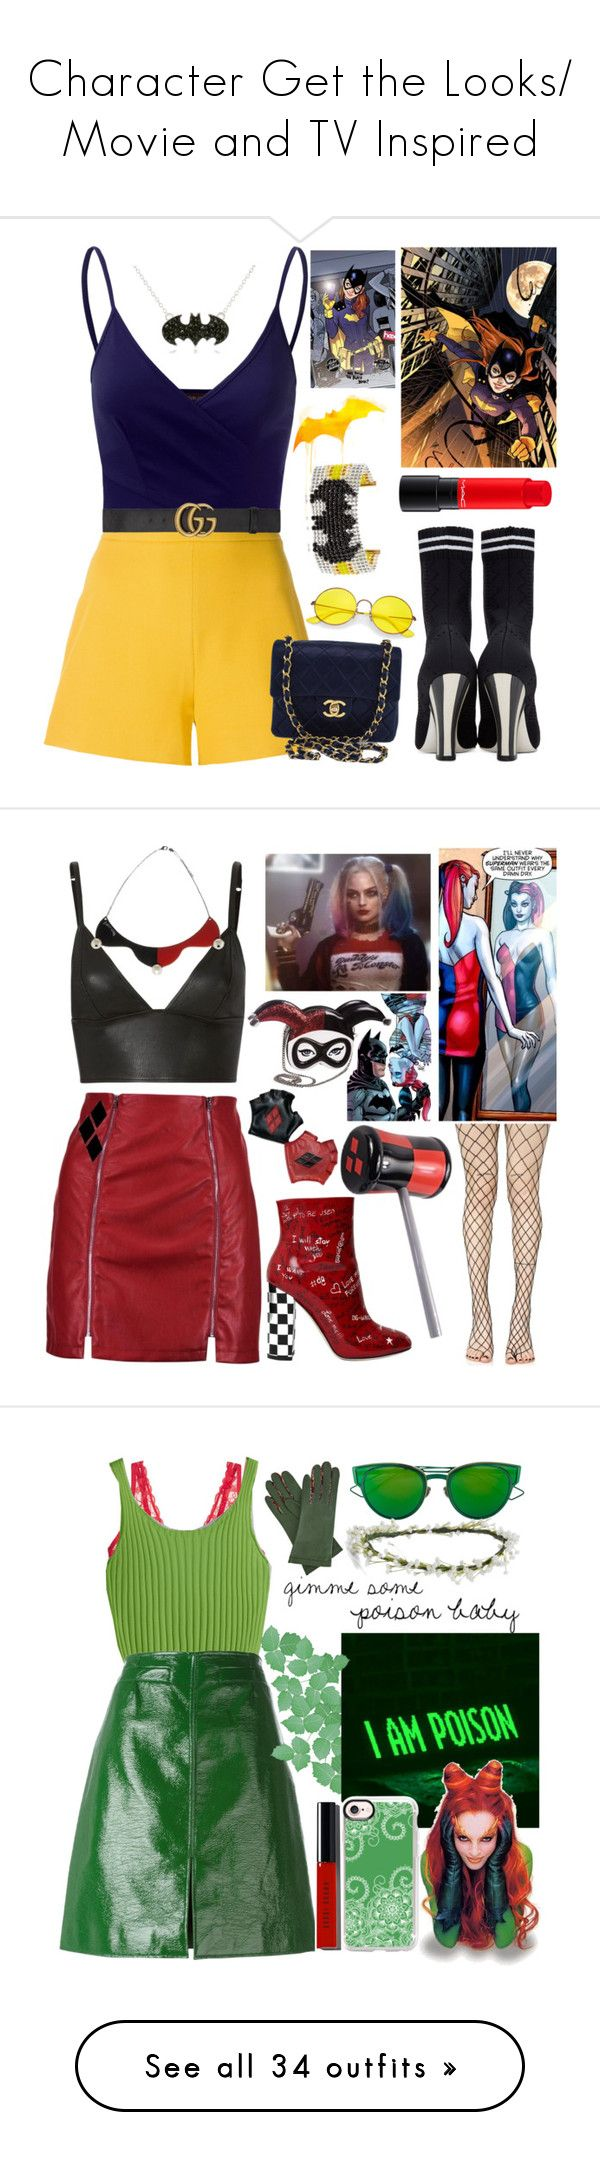 """""""Character Get the Looks/ Movie and TV Inspired"""" by ghkbarbie ❤ liked on Polyvore featuring Giambattista Valli, Doublju, Fendi, Gucci, Chanel, Ray-Ban, Bijoux de Famille, modern, T By Alexander Wang and Boohoo"""